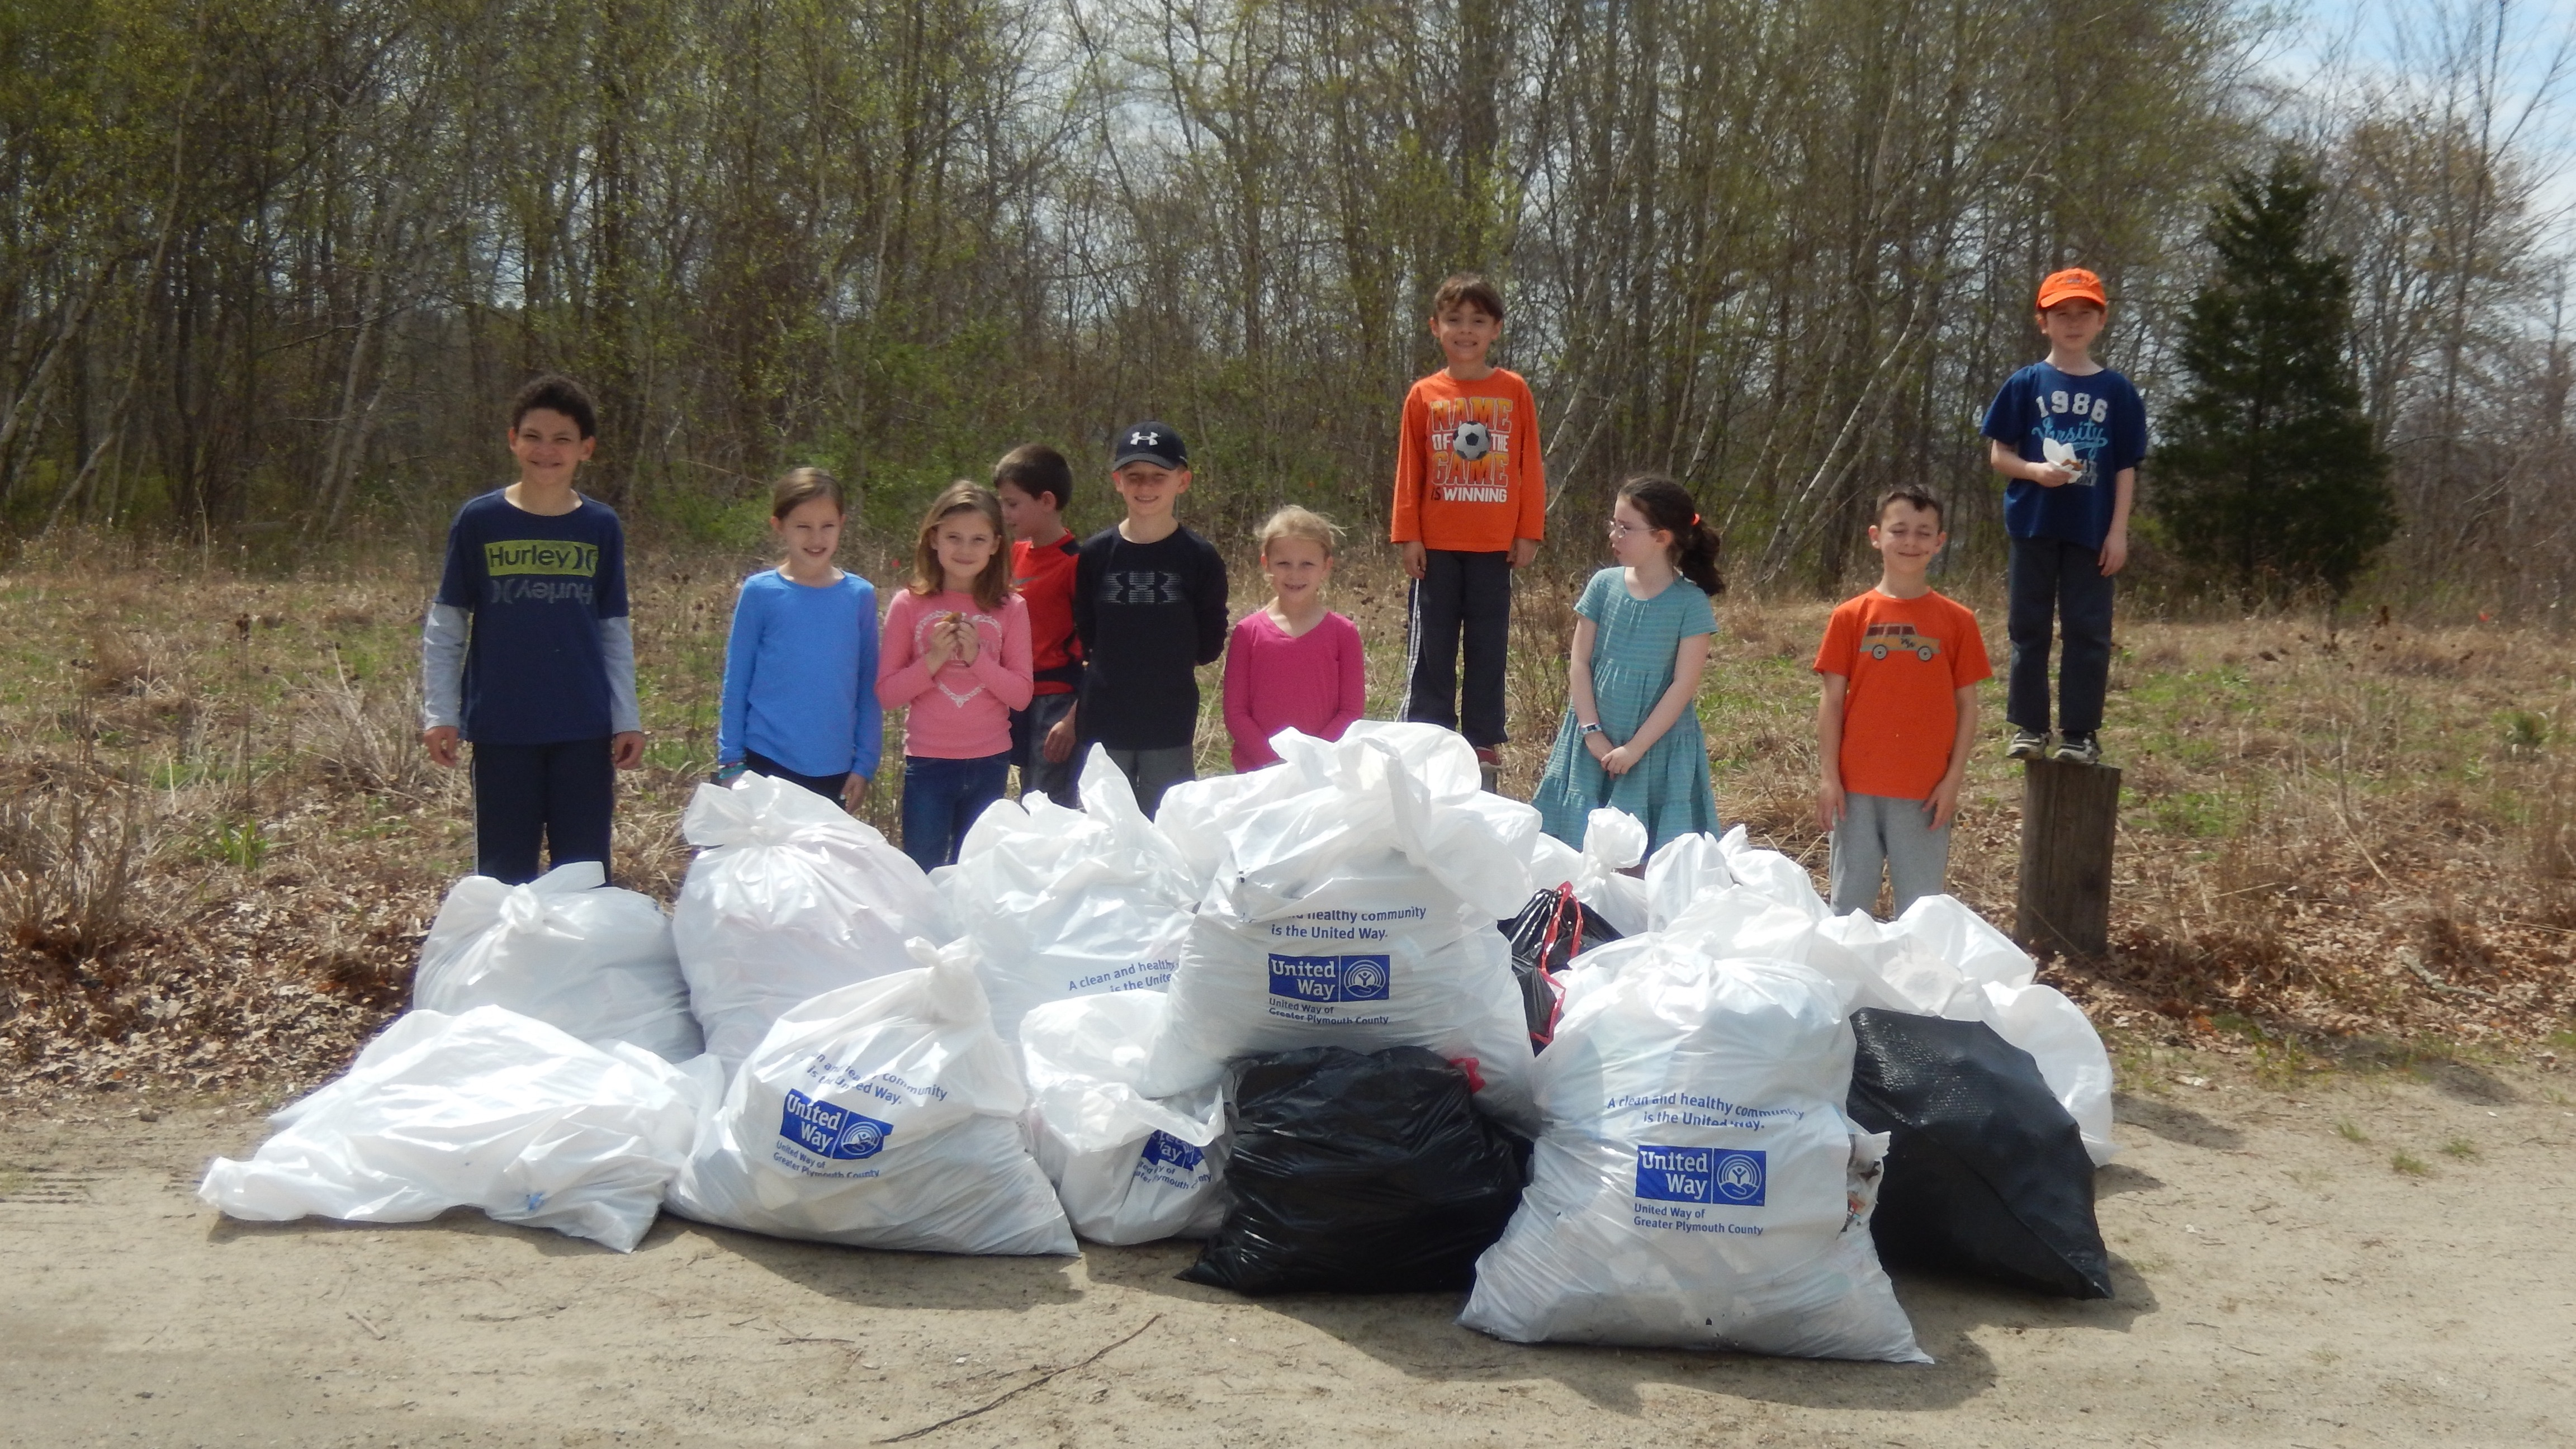 Park Serve Day at Upton State Forest